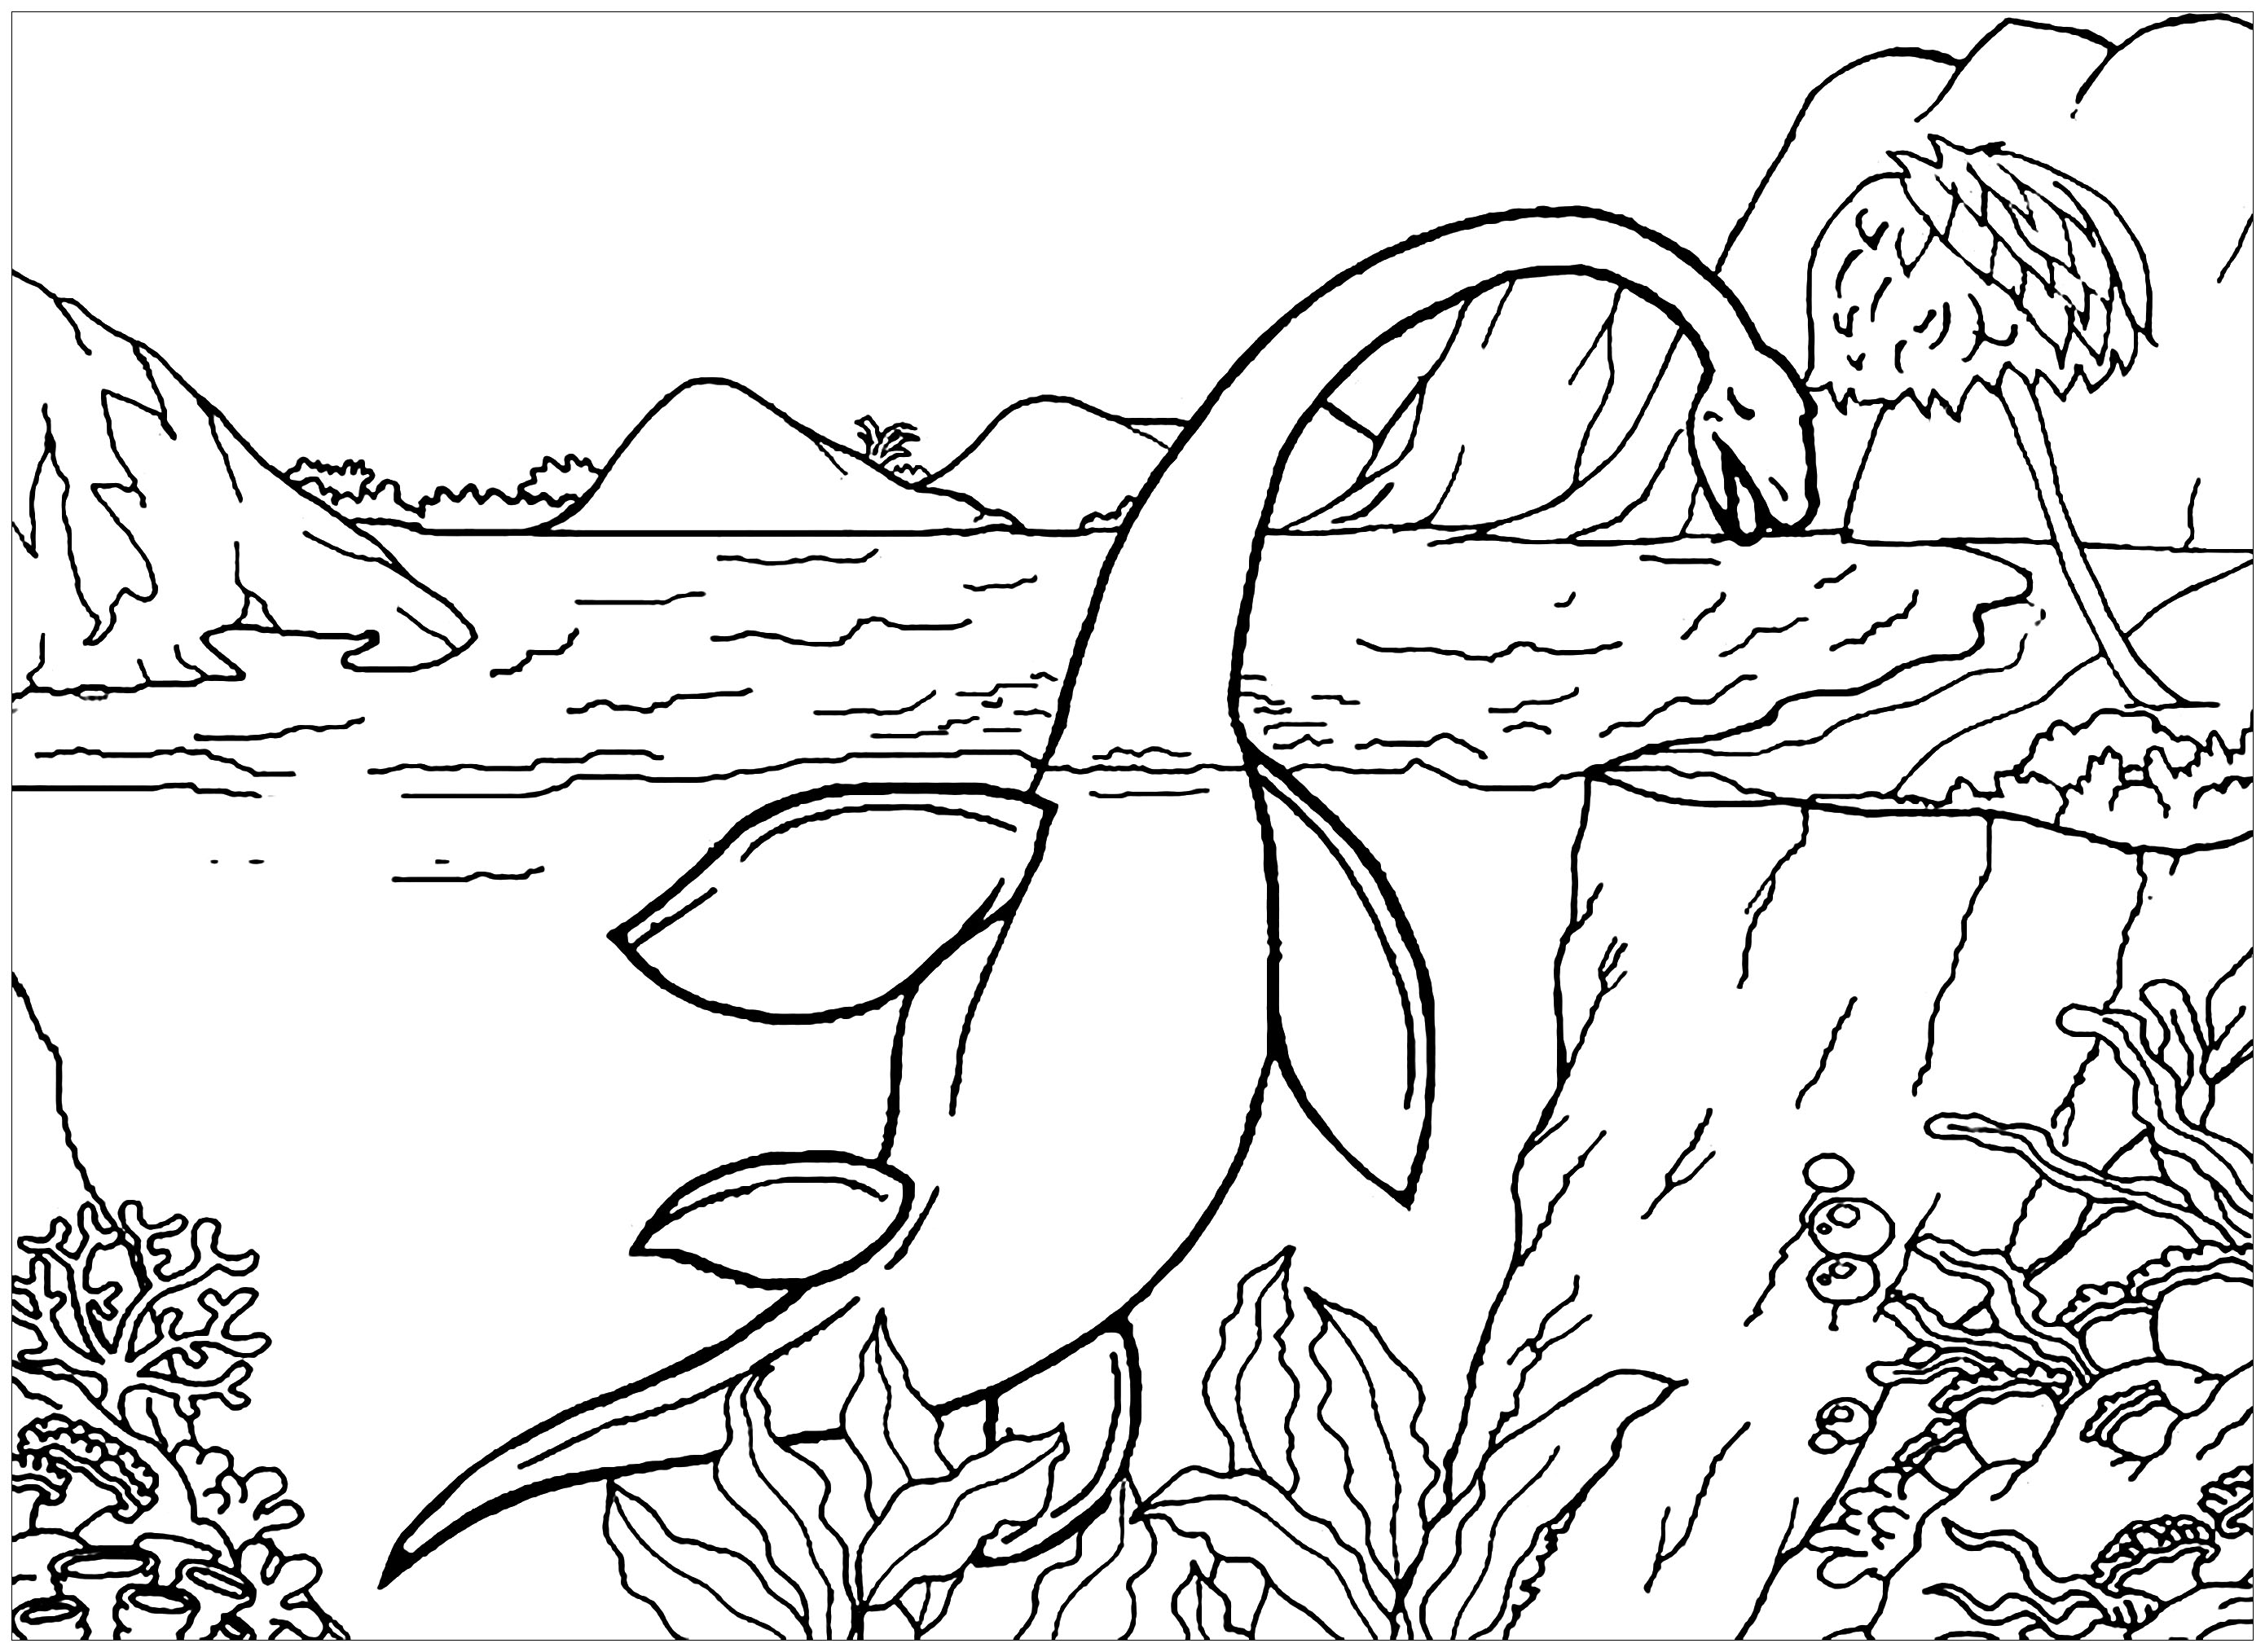 Dinosaurs To Download Aquatic Dinosaur Dinosaurs Kids Coloring Pages